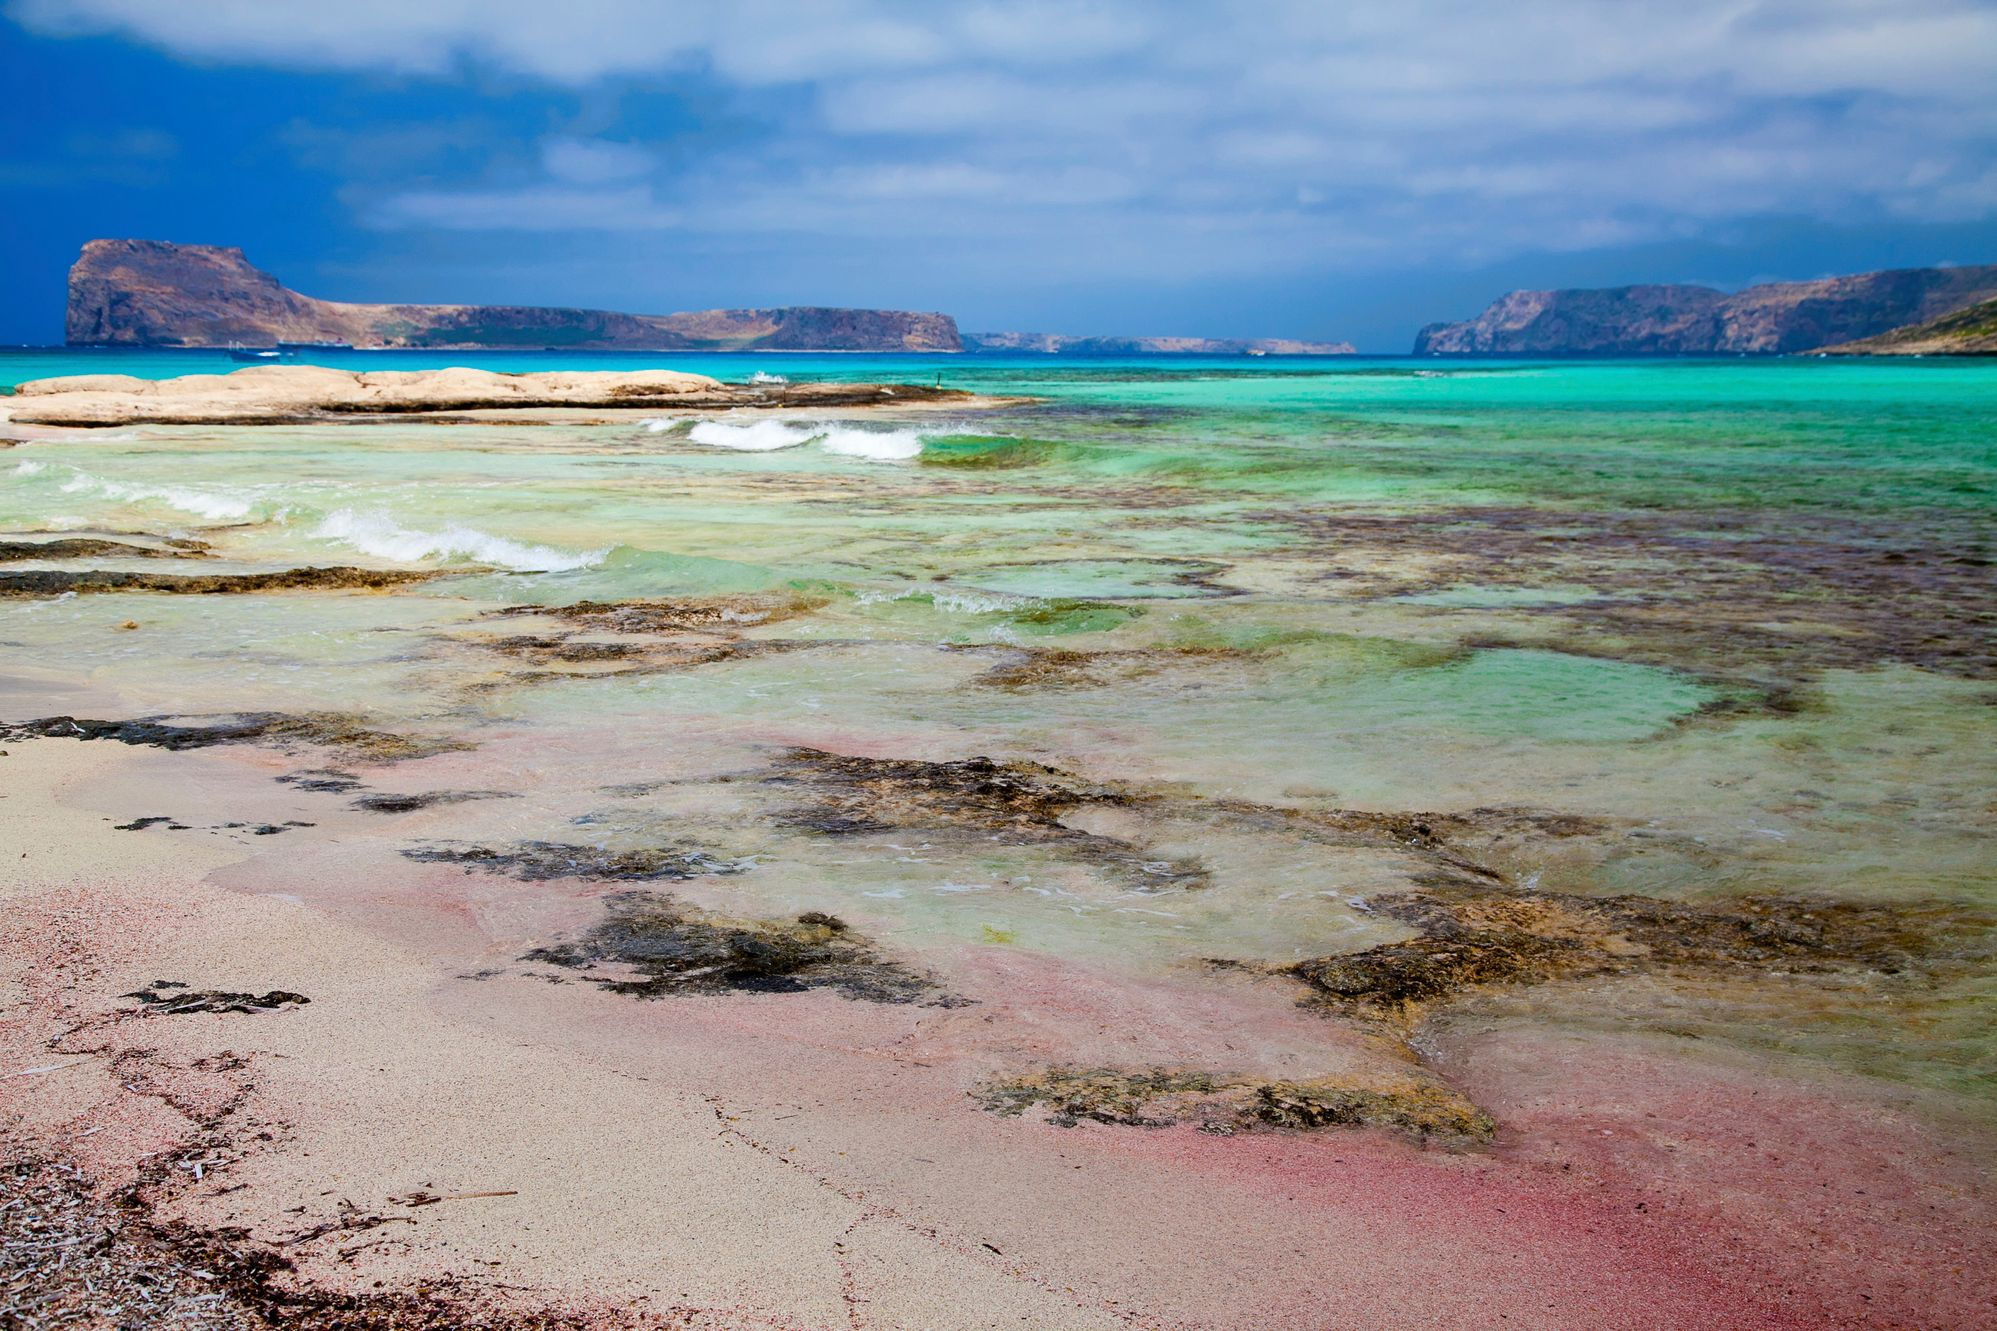 Pink sands and turquoise waters in Crete - a great destination for family holidays on a budget